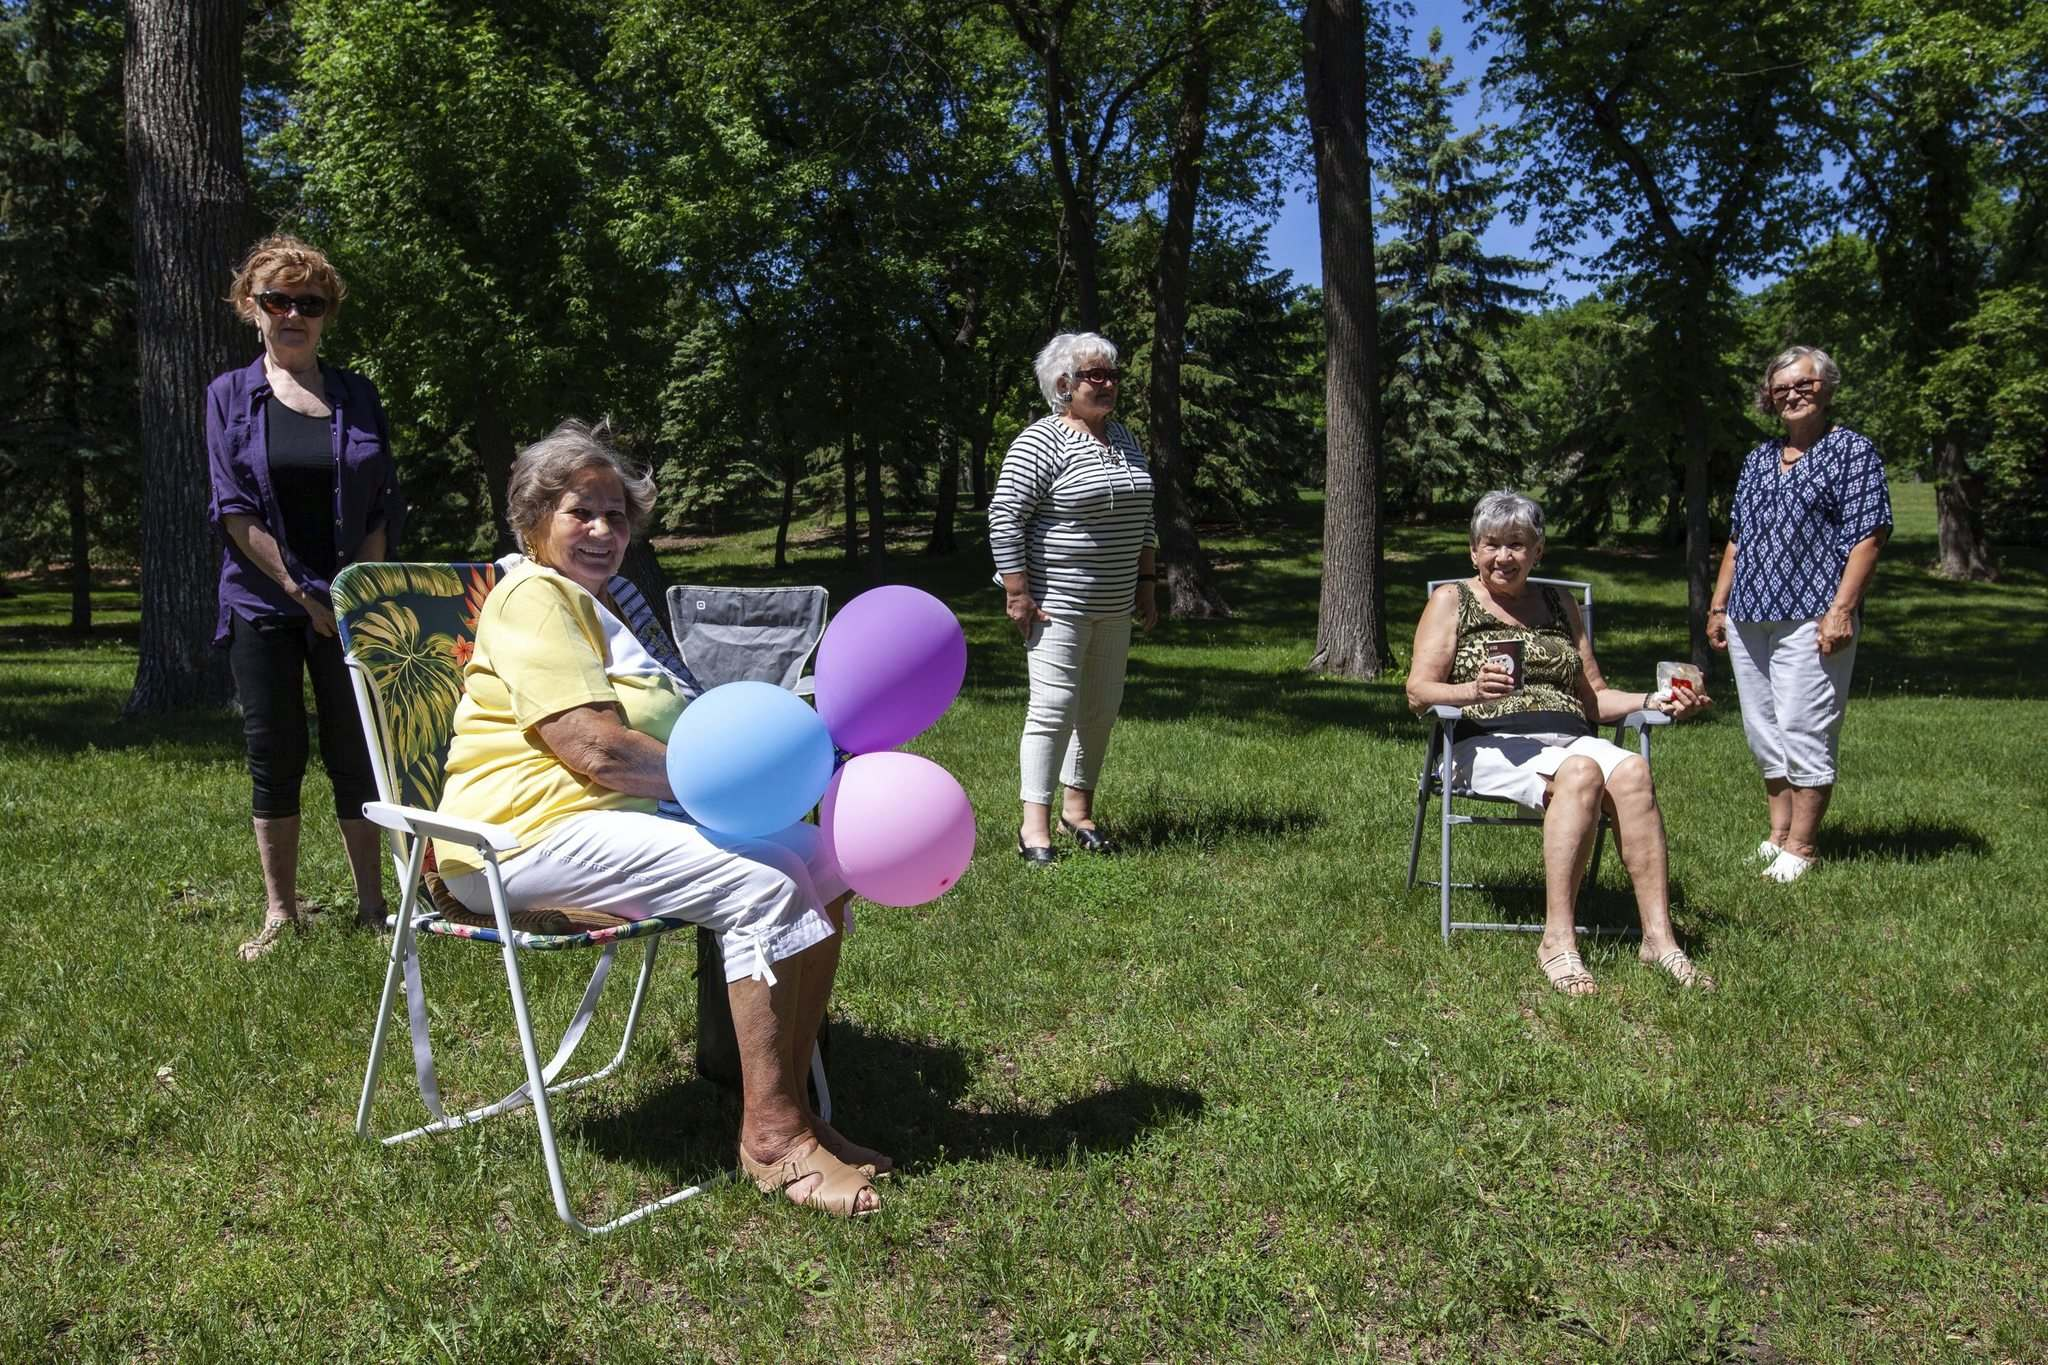 Tela Karadin has waited weeks to celebrate her 82 birthday together with a few friends. With the relaxed COVID-19 restrictions, the small group met at Kildonan Park on Saturday. (Daniel Crump / Winnipeg Free Press)</p>